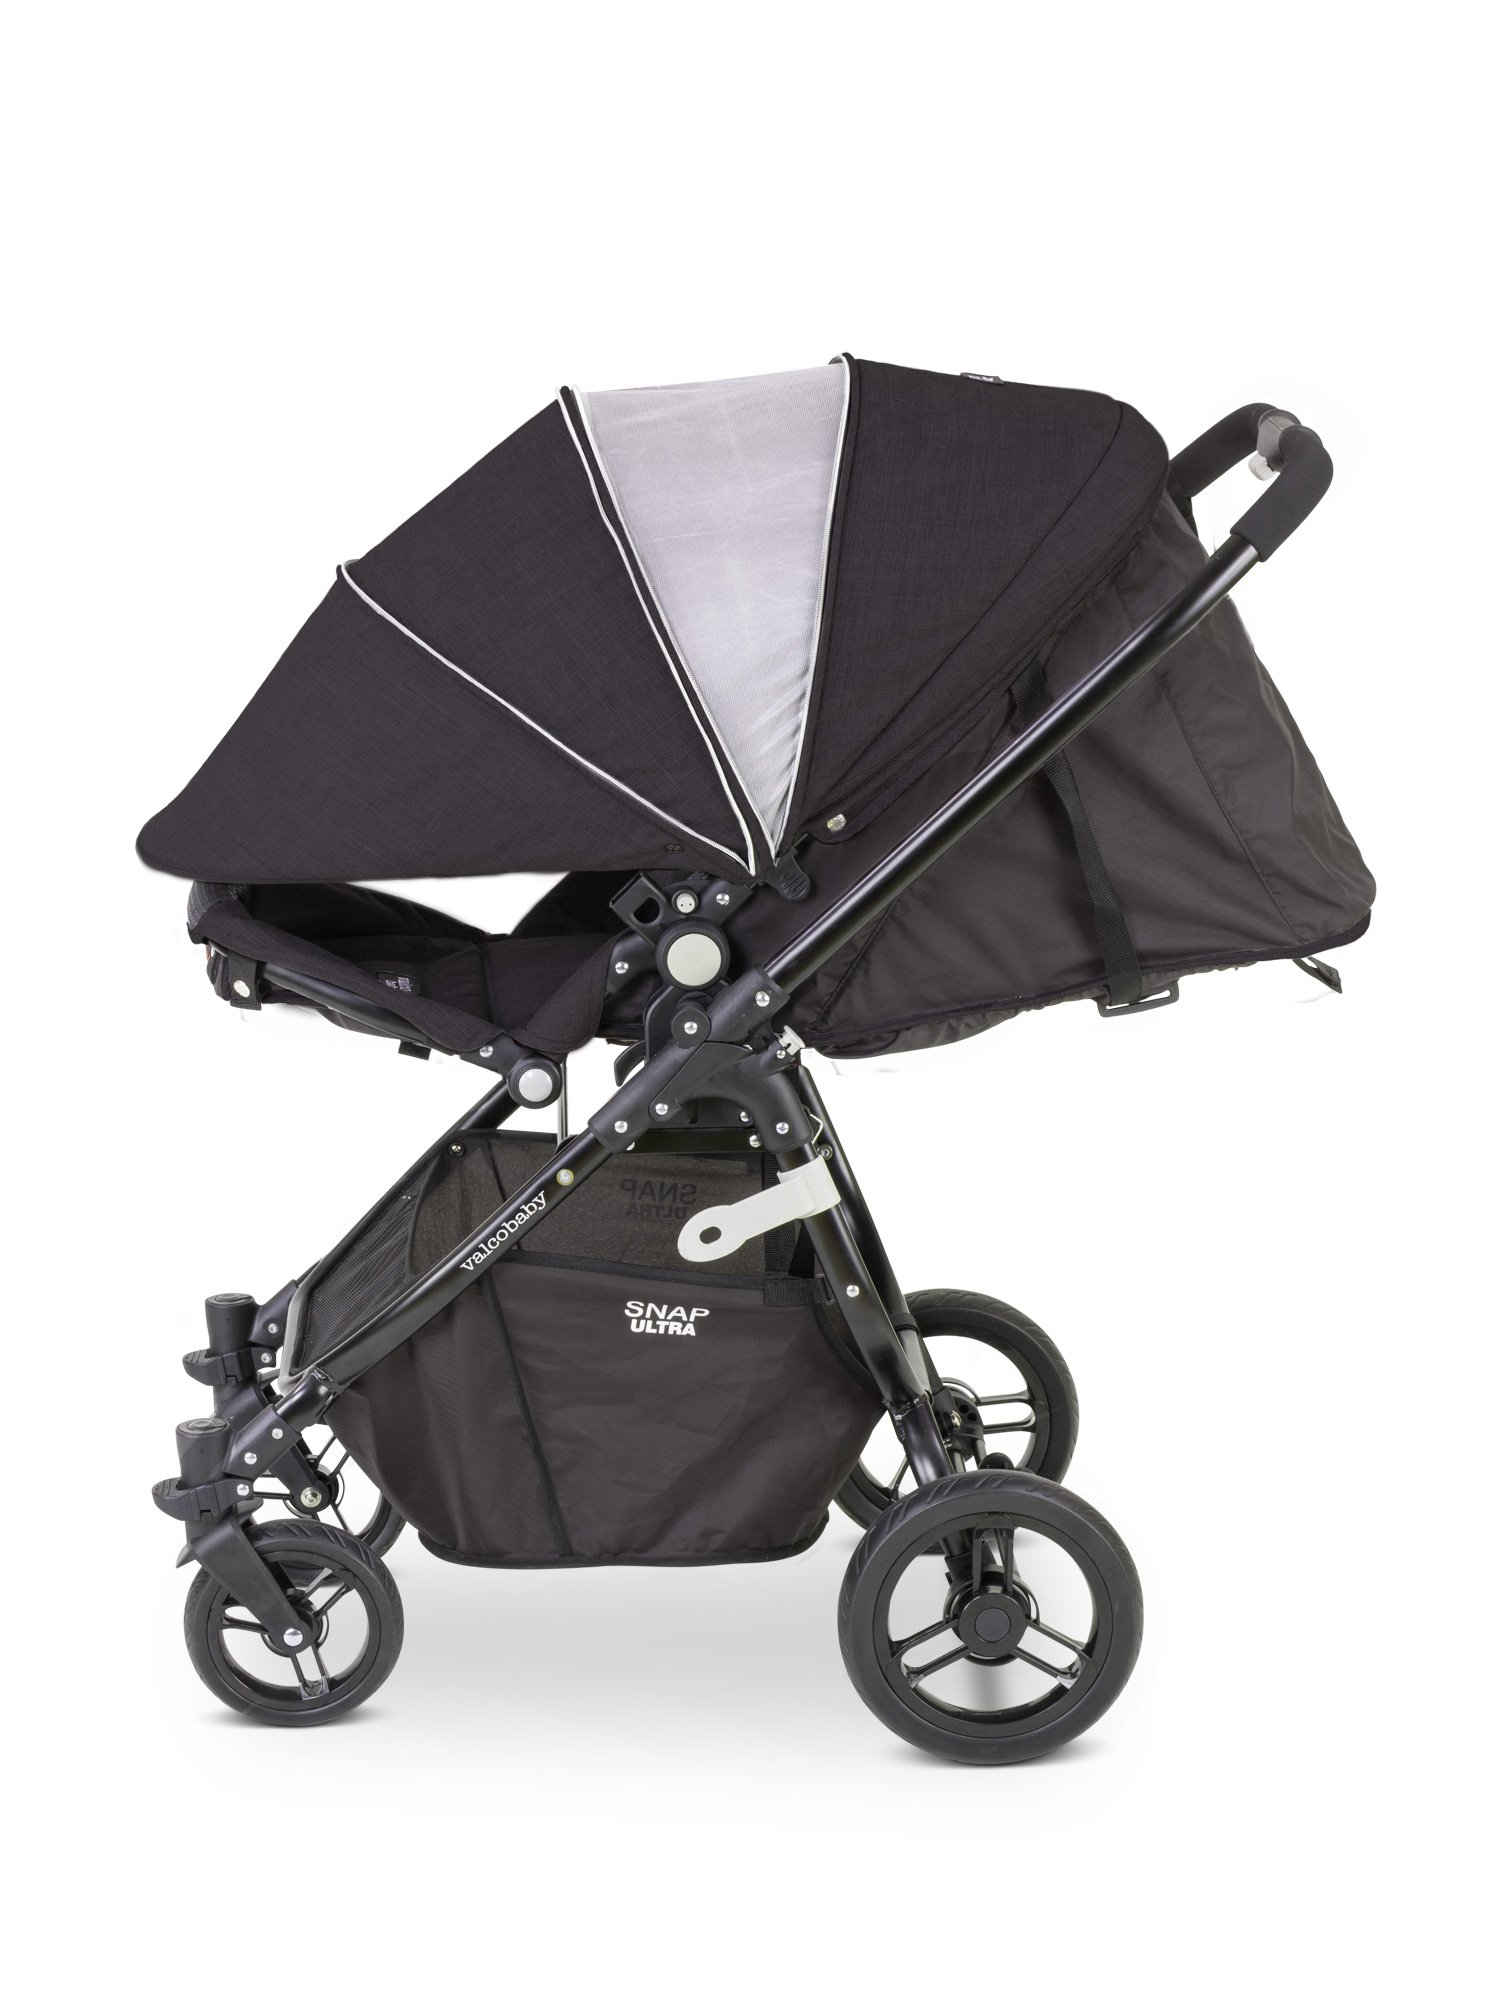 Valco Baby Snap Ultra Lightweight Reversible Stroller (Black Night) by Valco Baby (Image #5)